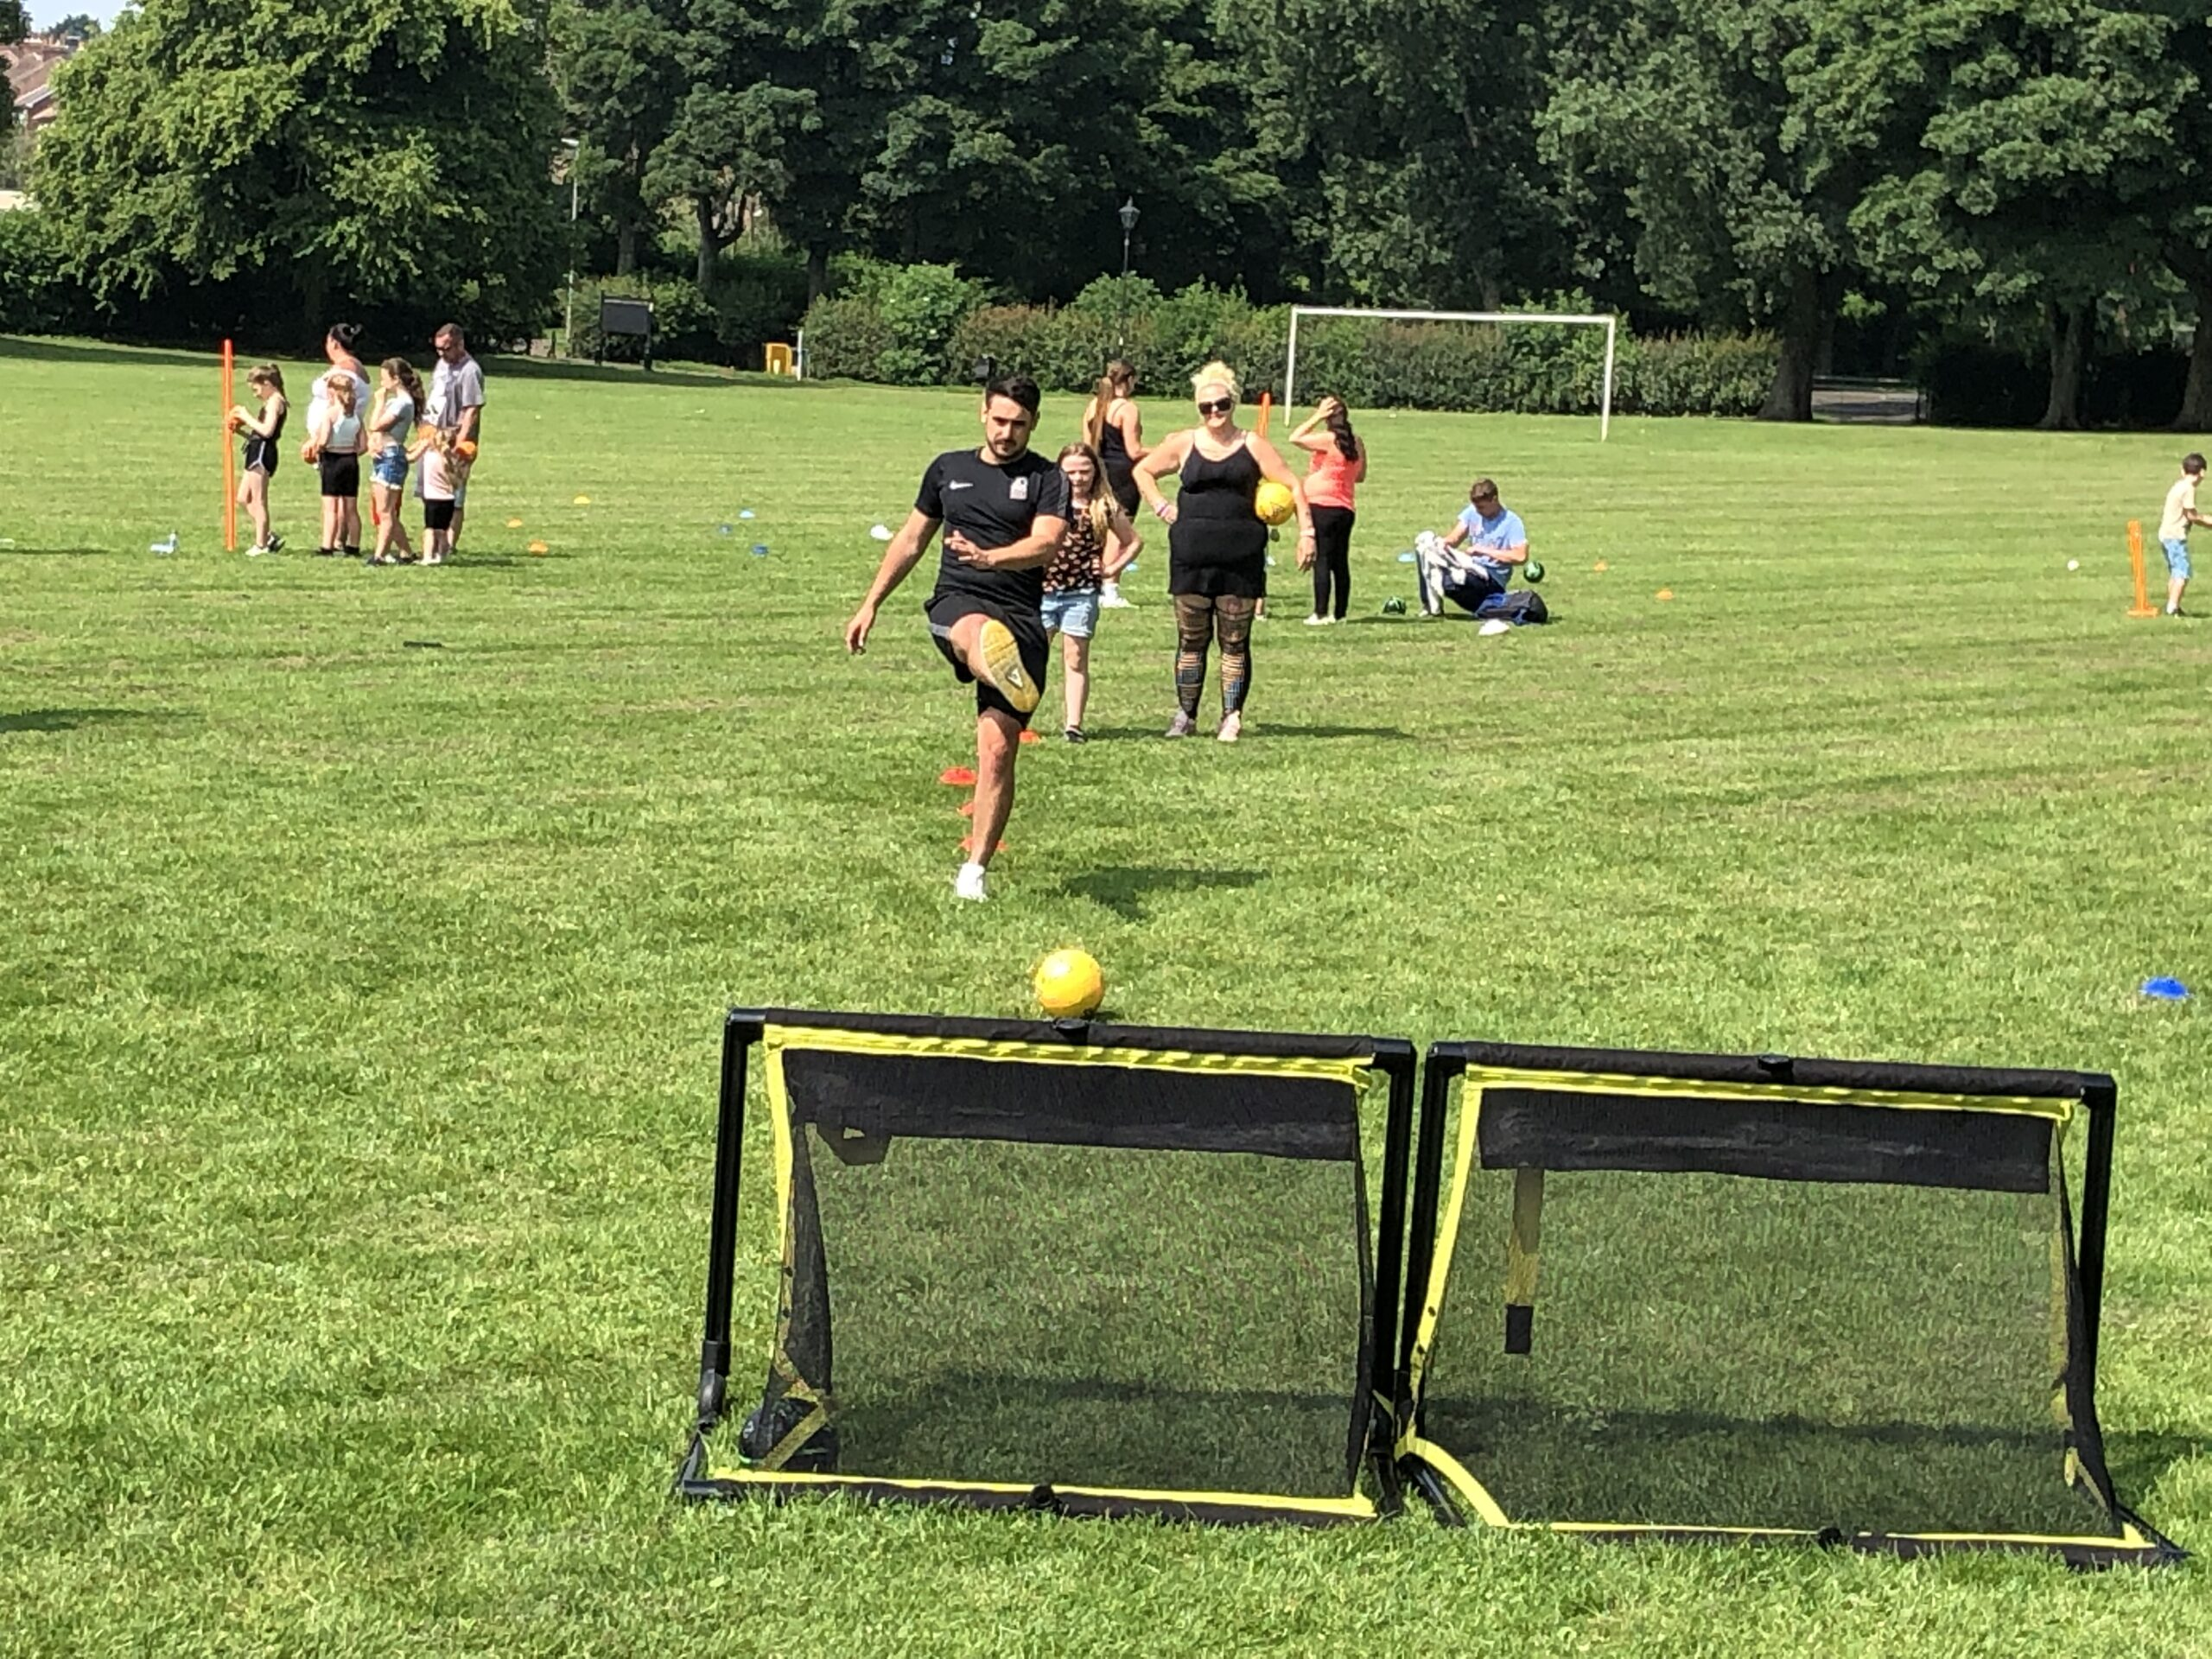 Image of Sports Coach demonstrating activity